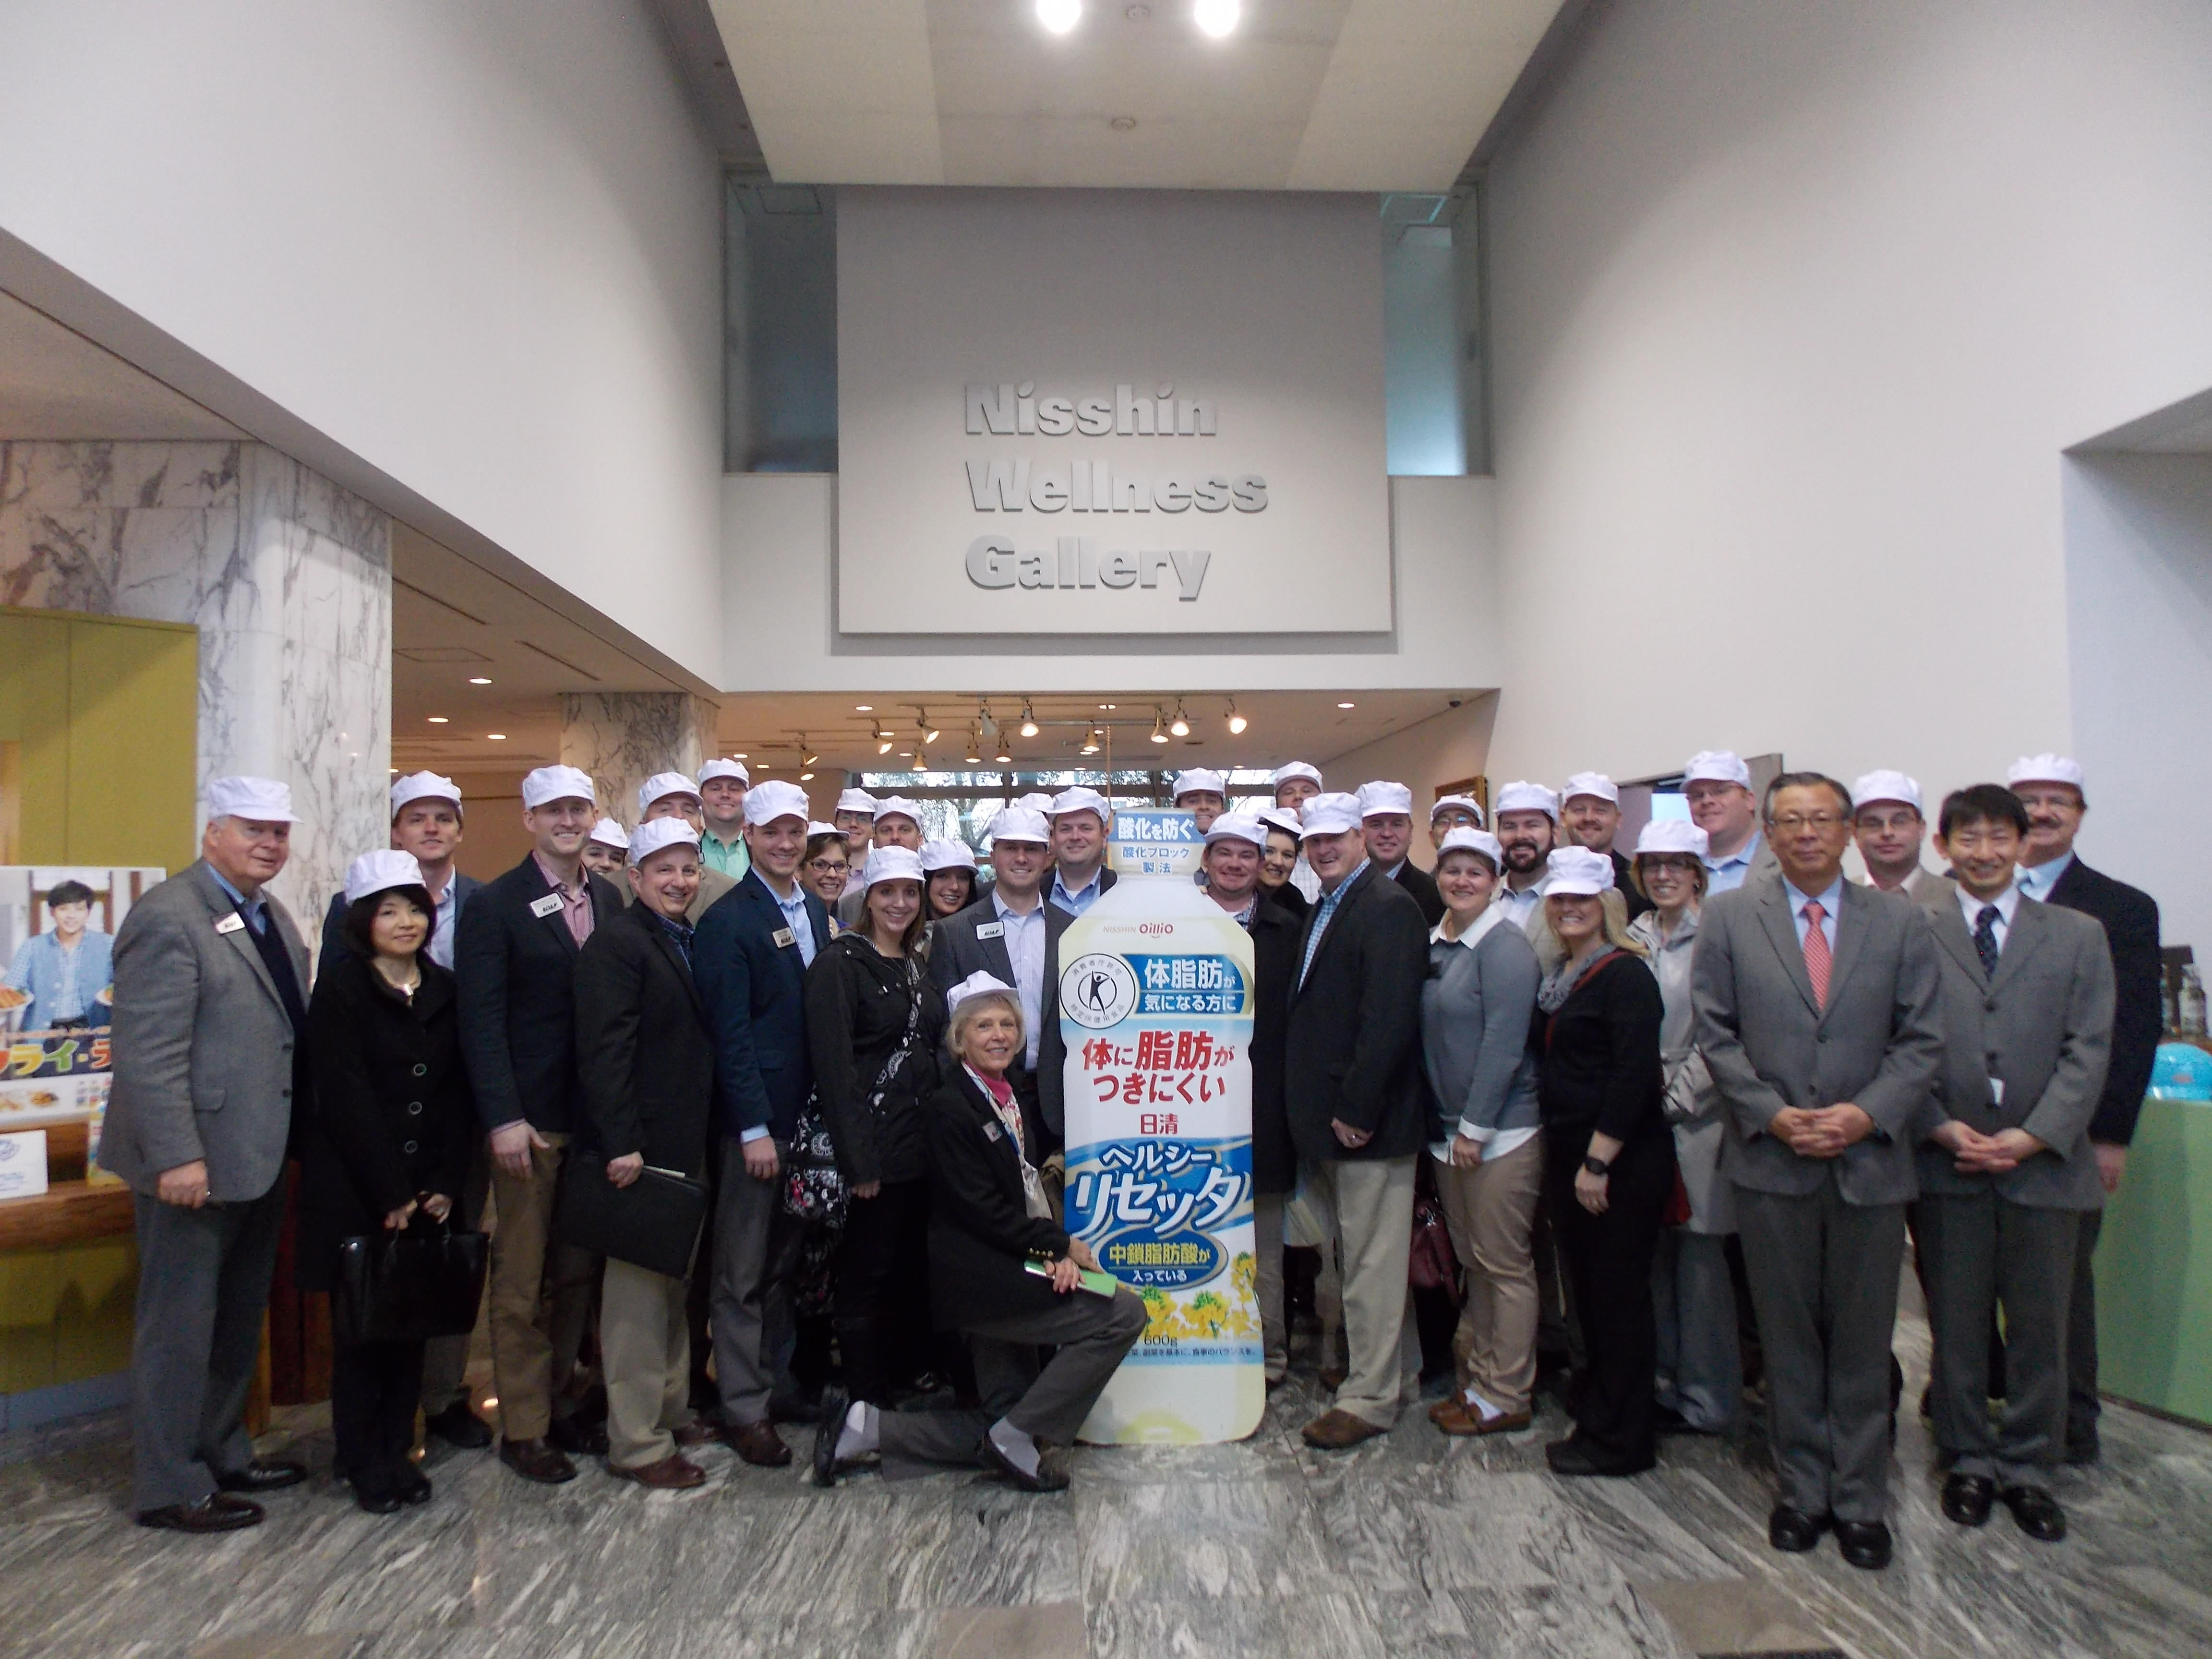 The Class of 2016 visited Nisshin OilliO on Tuesday, February 22. OilliO imports soybeans from the U.S. and processes the grain into various food products.